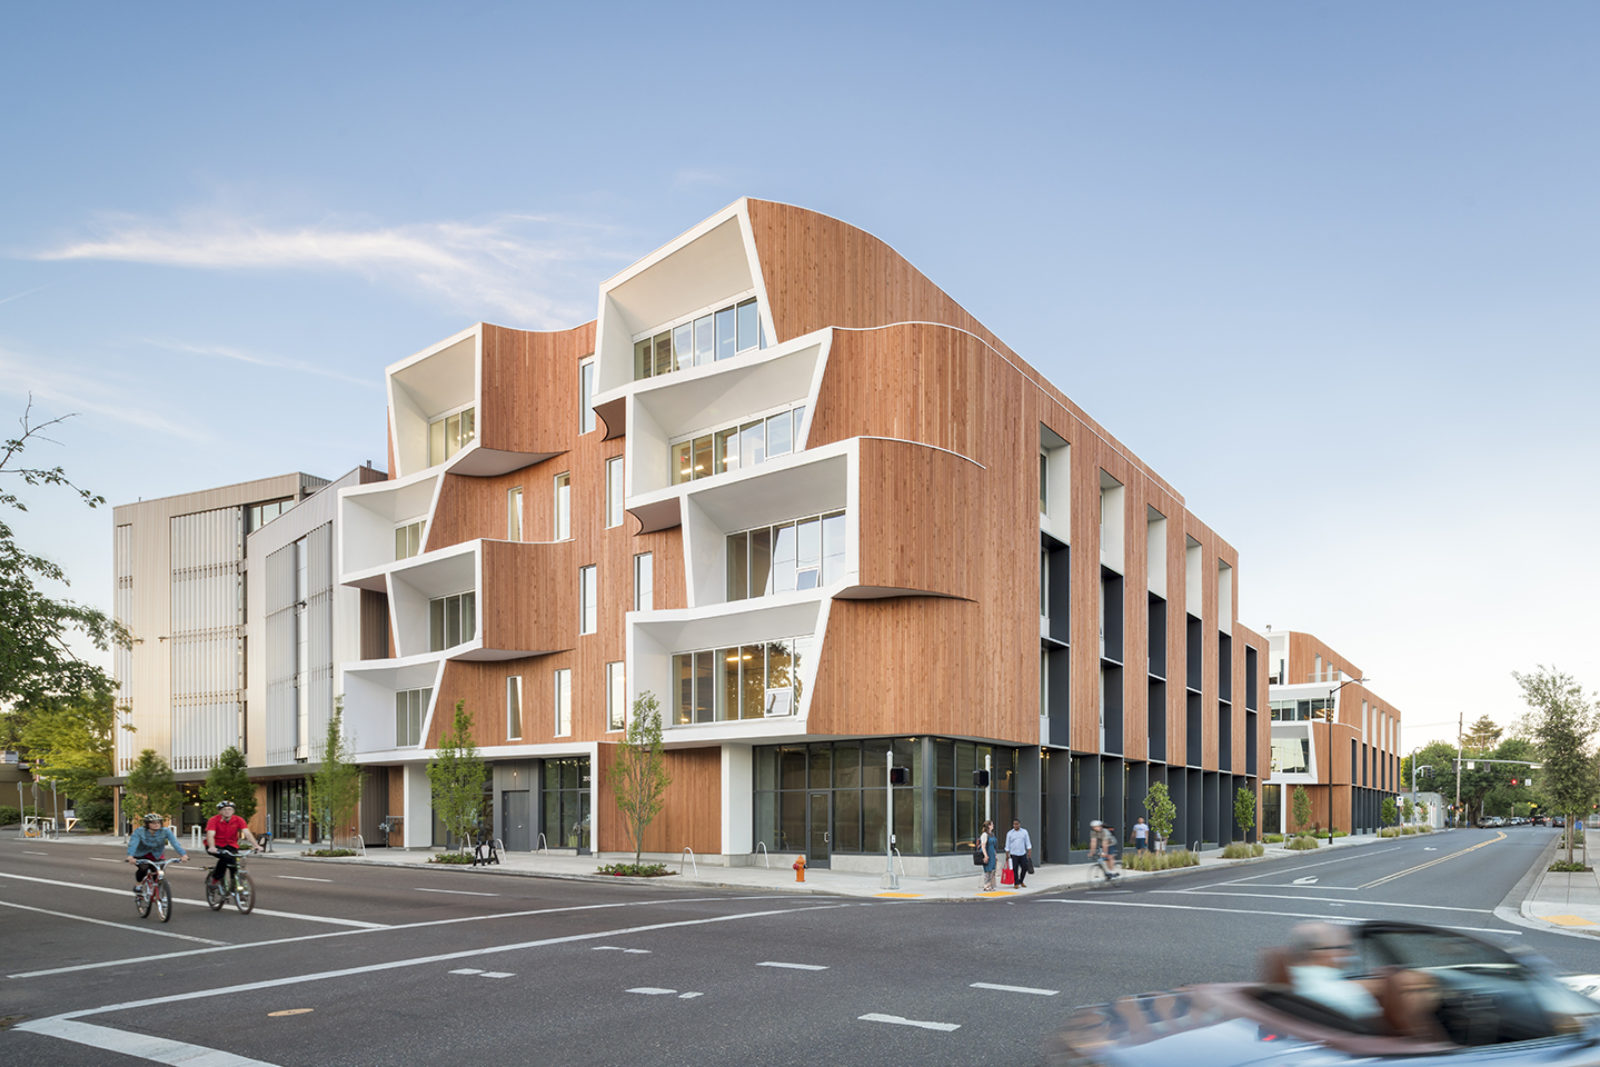 Holst Architecture Newest Project in Portland Contains Curvilinear Facade holst architecture Holst Architecture Project in Portland Contains Curvilinear Facade Holst Architecture Newest Project in Portland Contains Curvilinear Facade 4